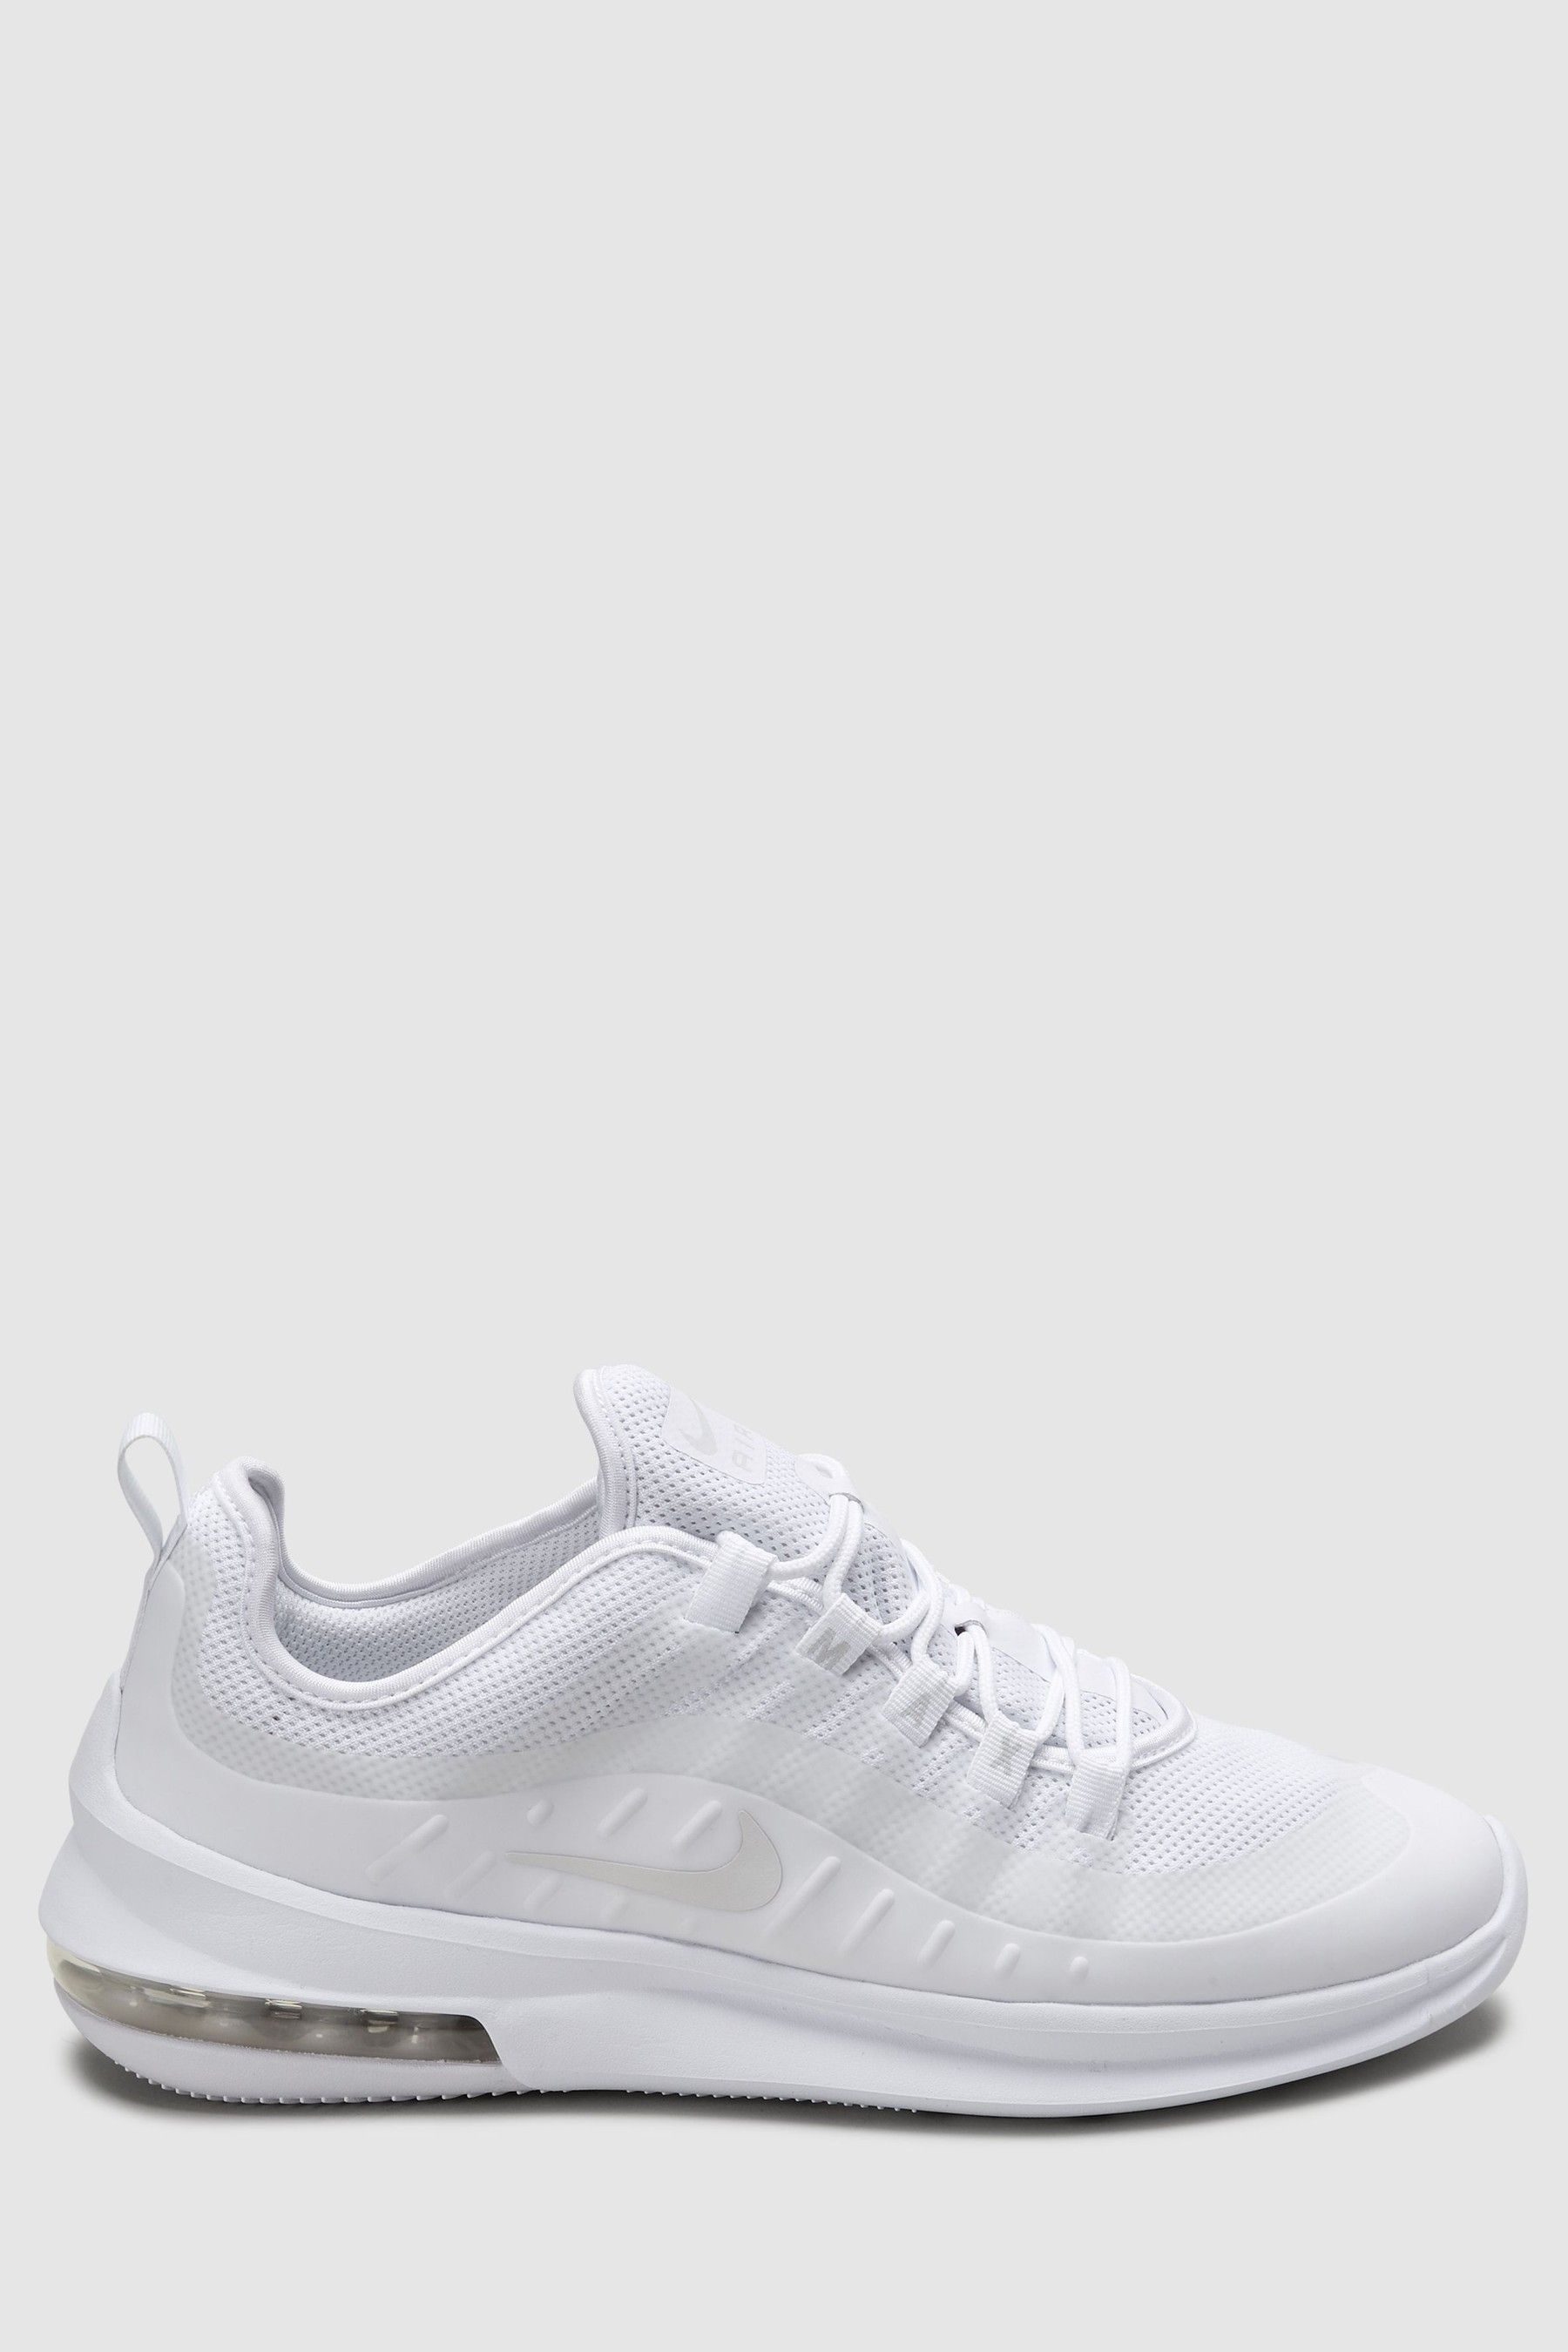 Mens Nike Air Max Axis White | Products in 2019 | Nike air